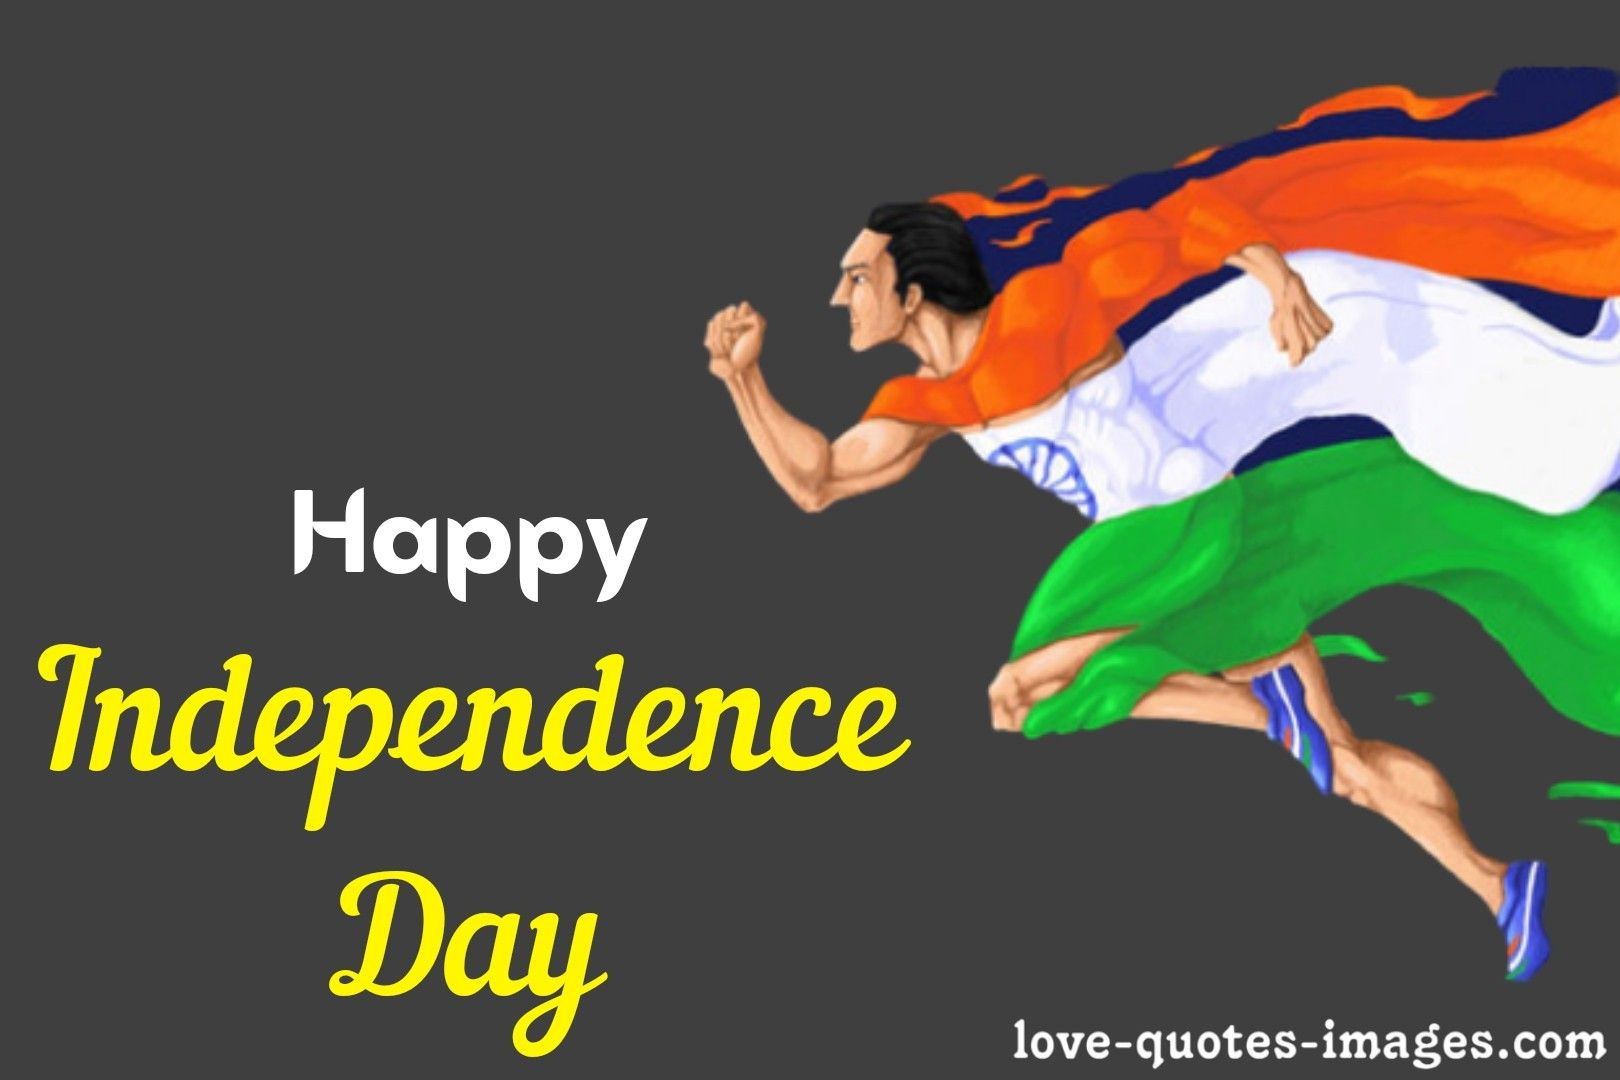 Independence Day Images in 2020 Happy independence day